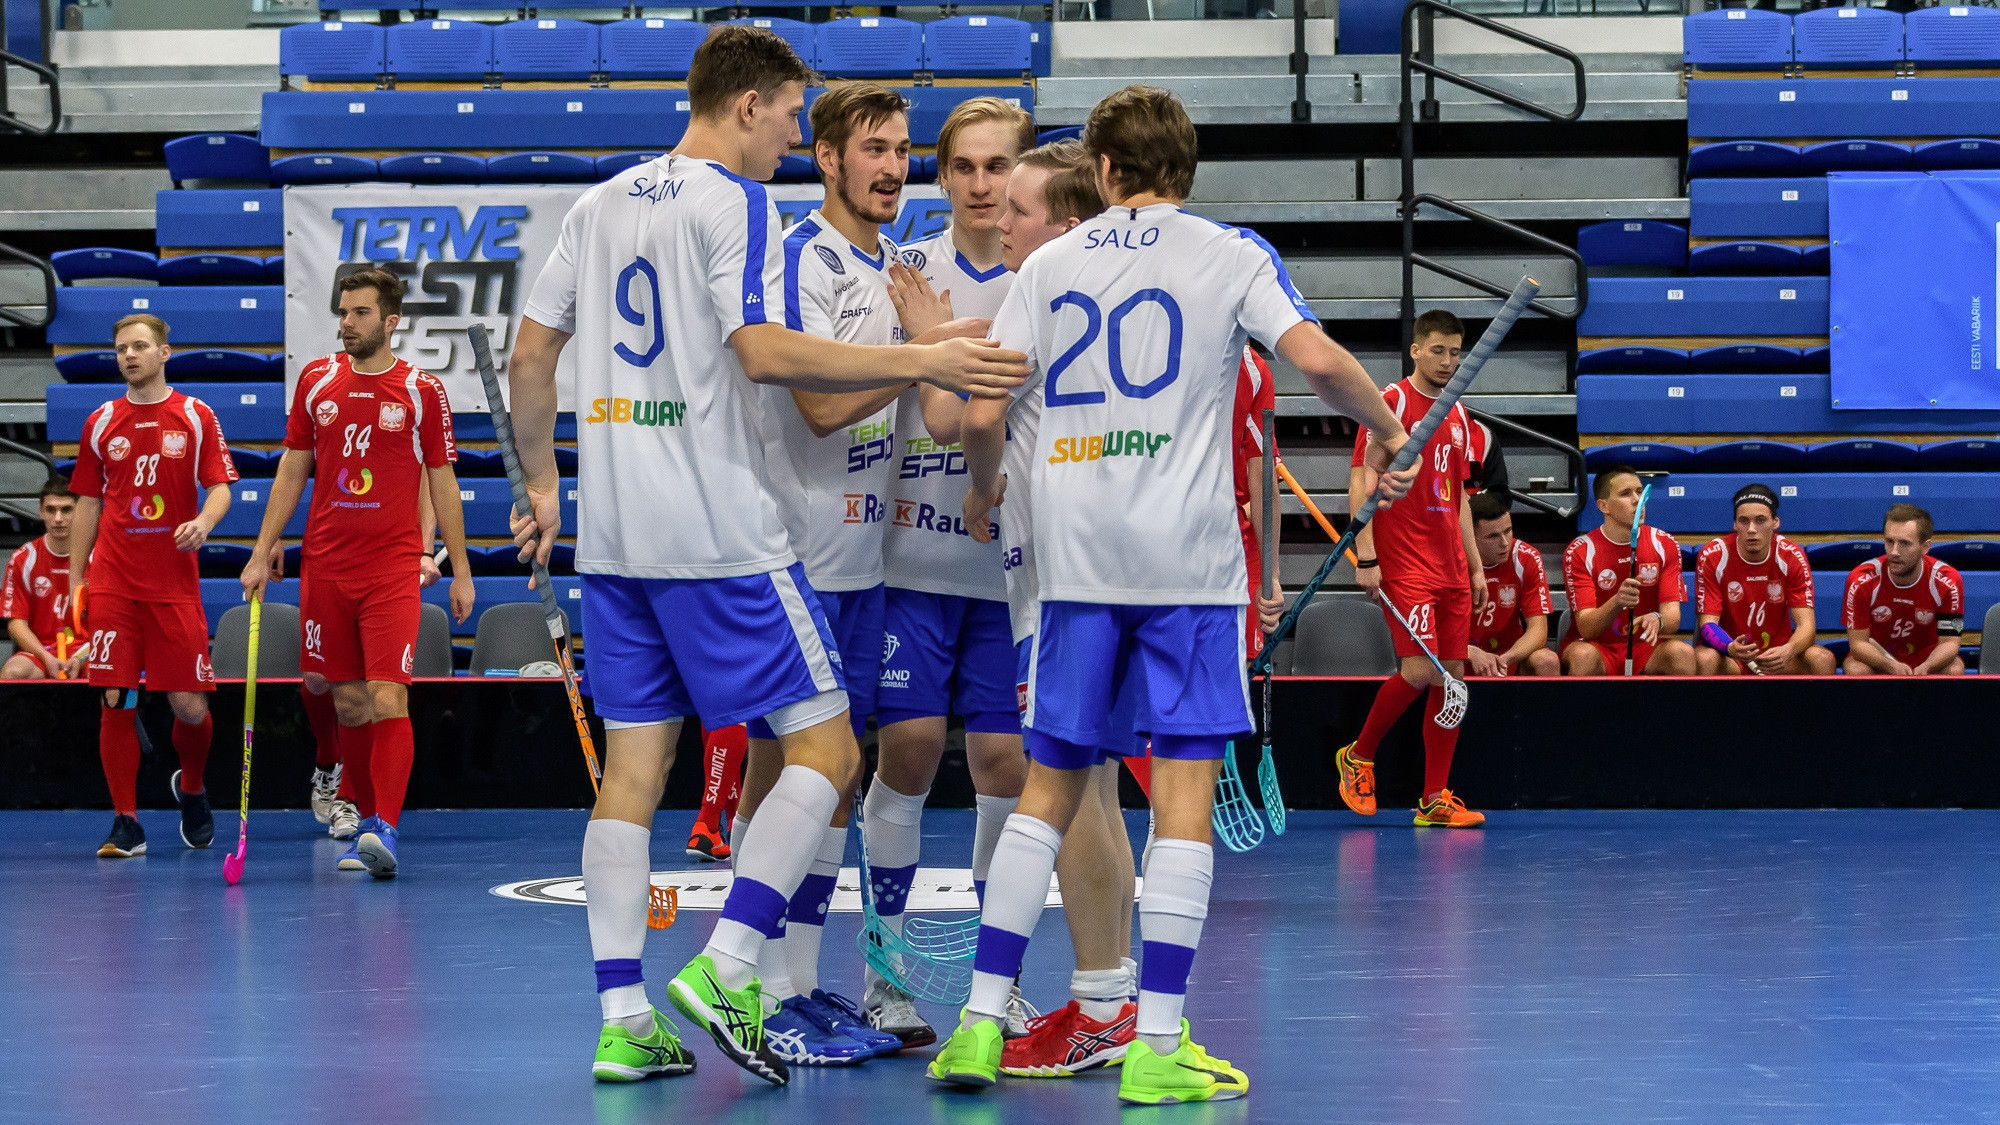 Finland crush Poland as reigning champions begin bid to qualify for Men's World Floorball Championships